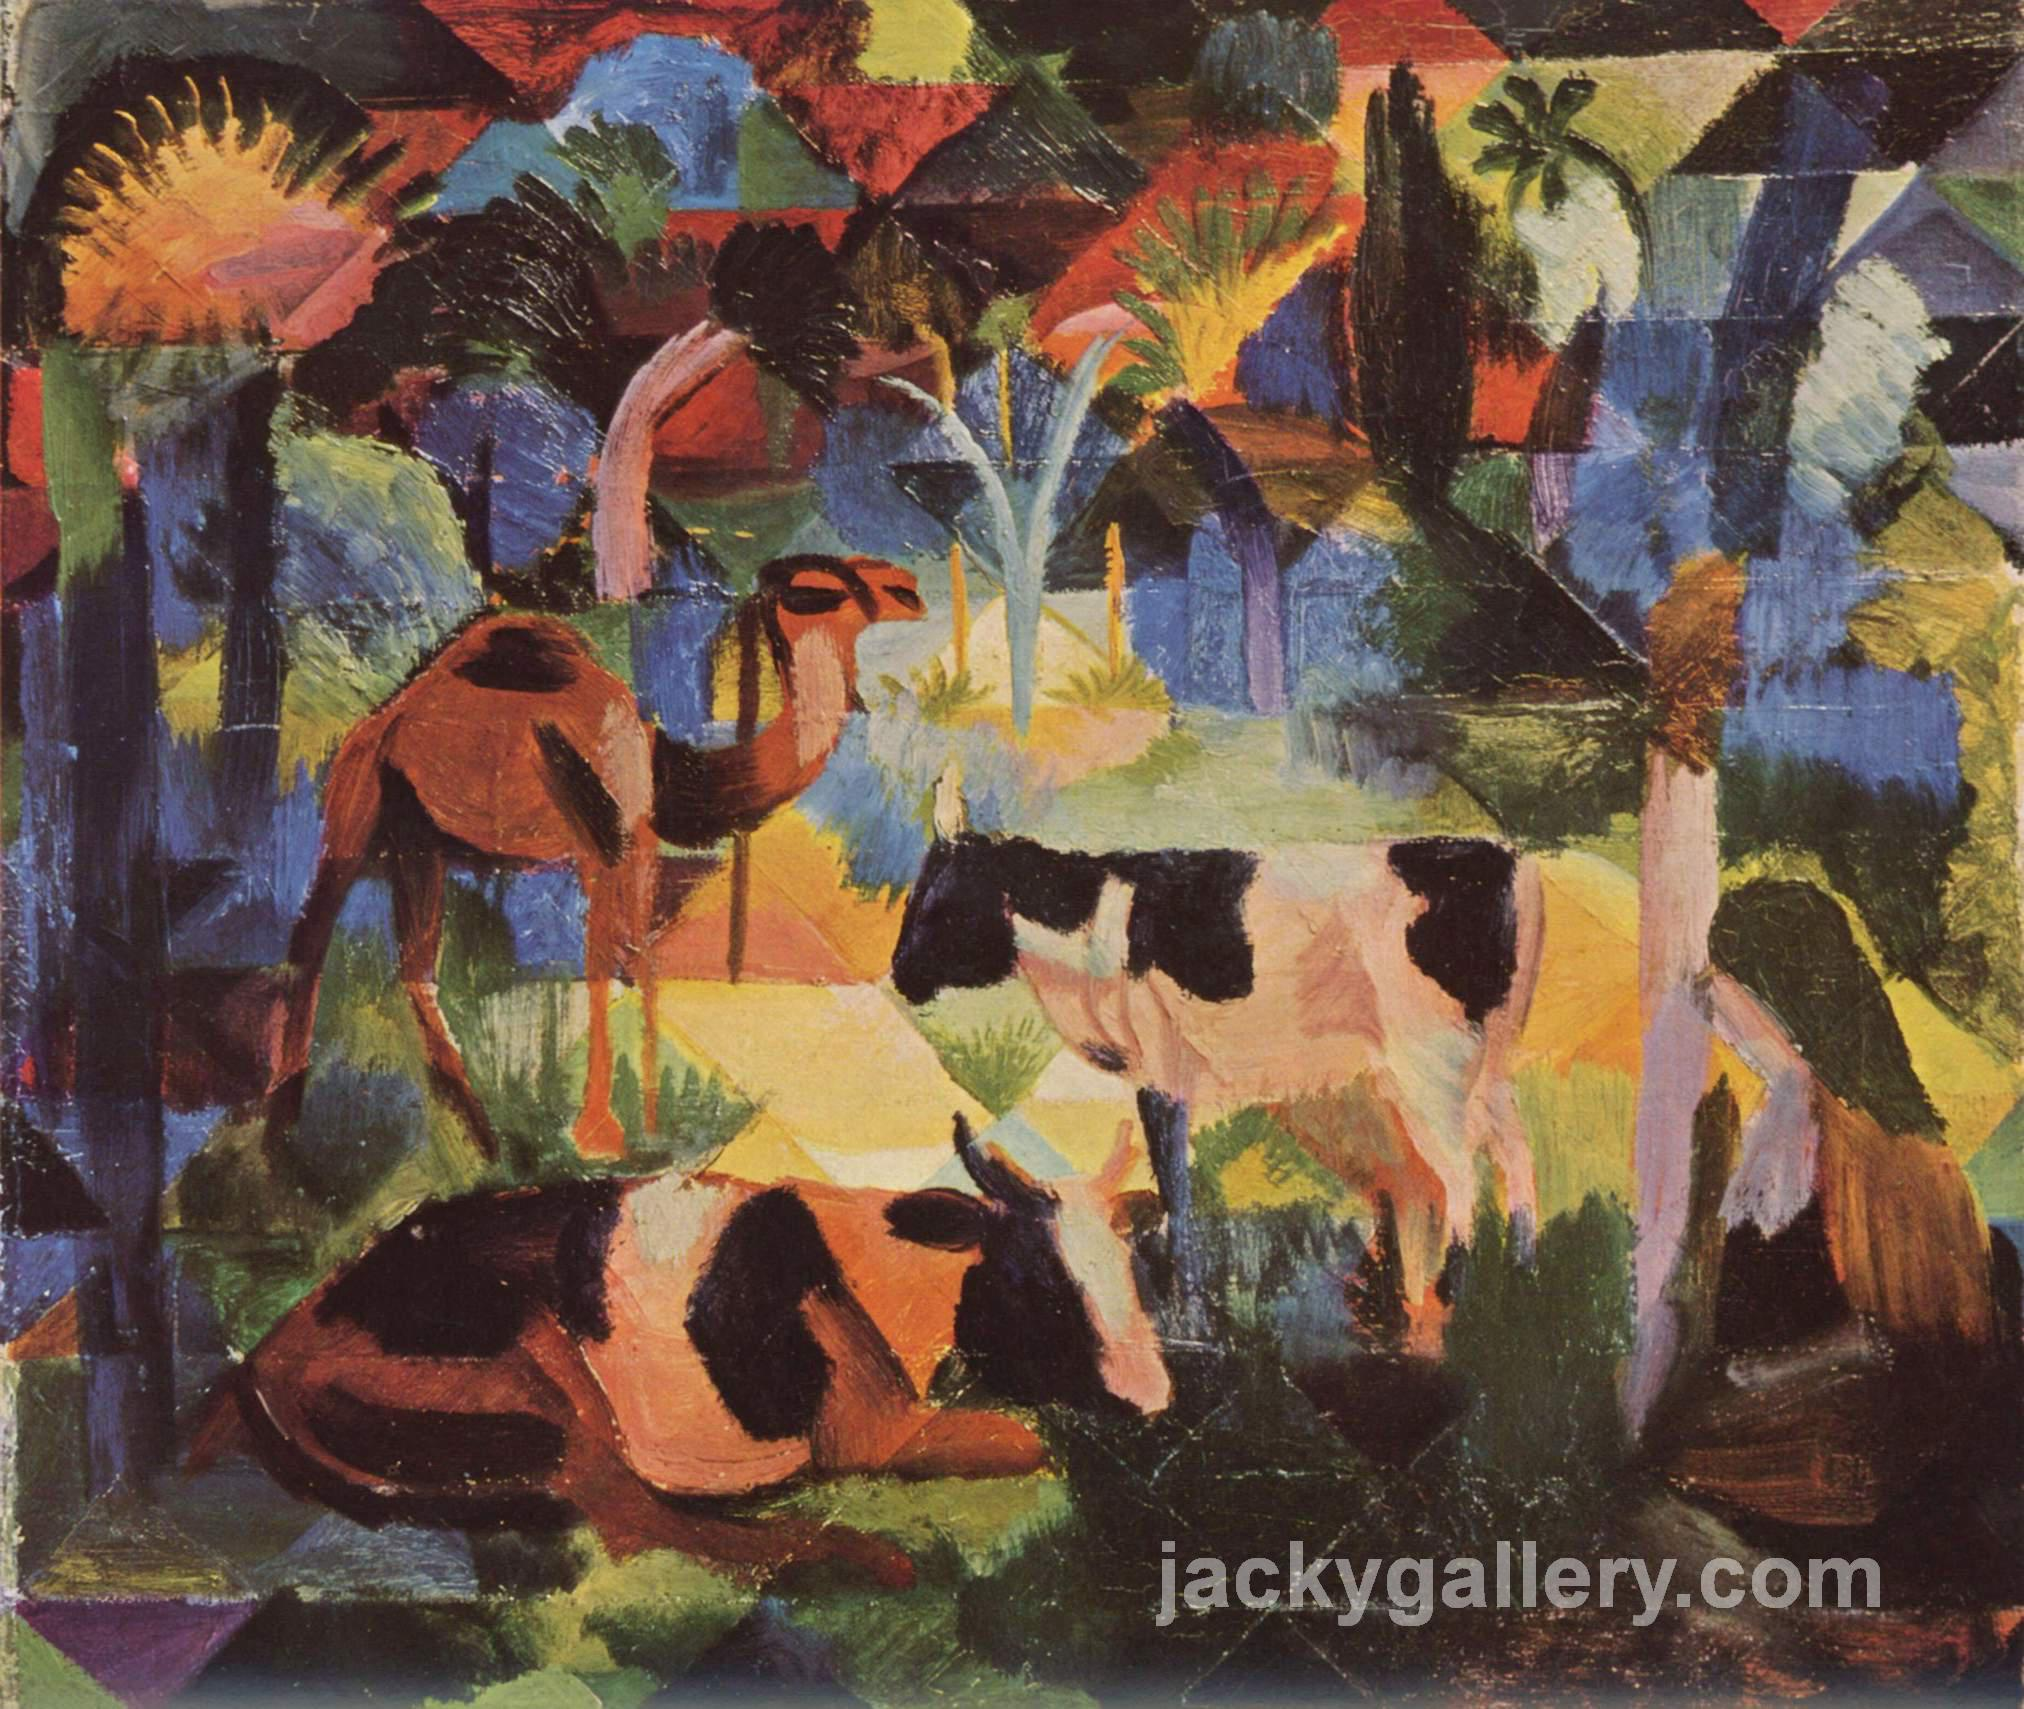 Landscape with Cows and a Camel, August Macke painting